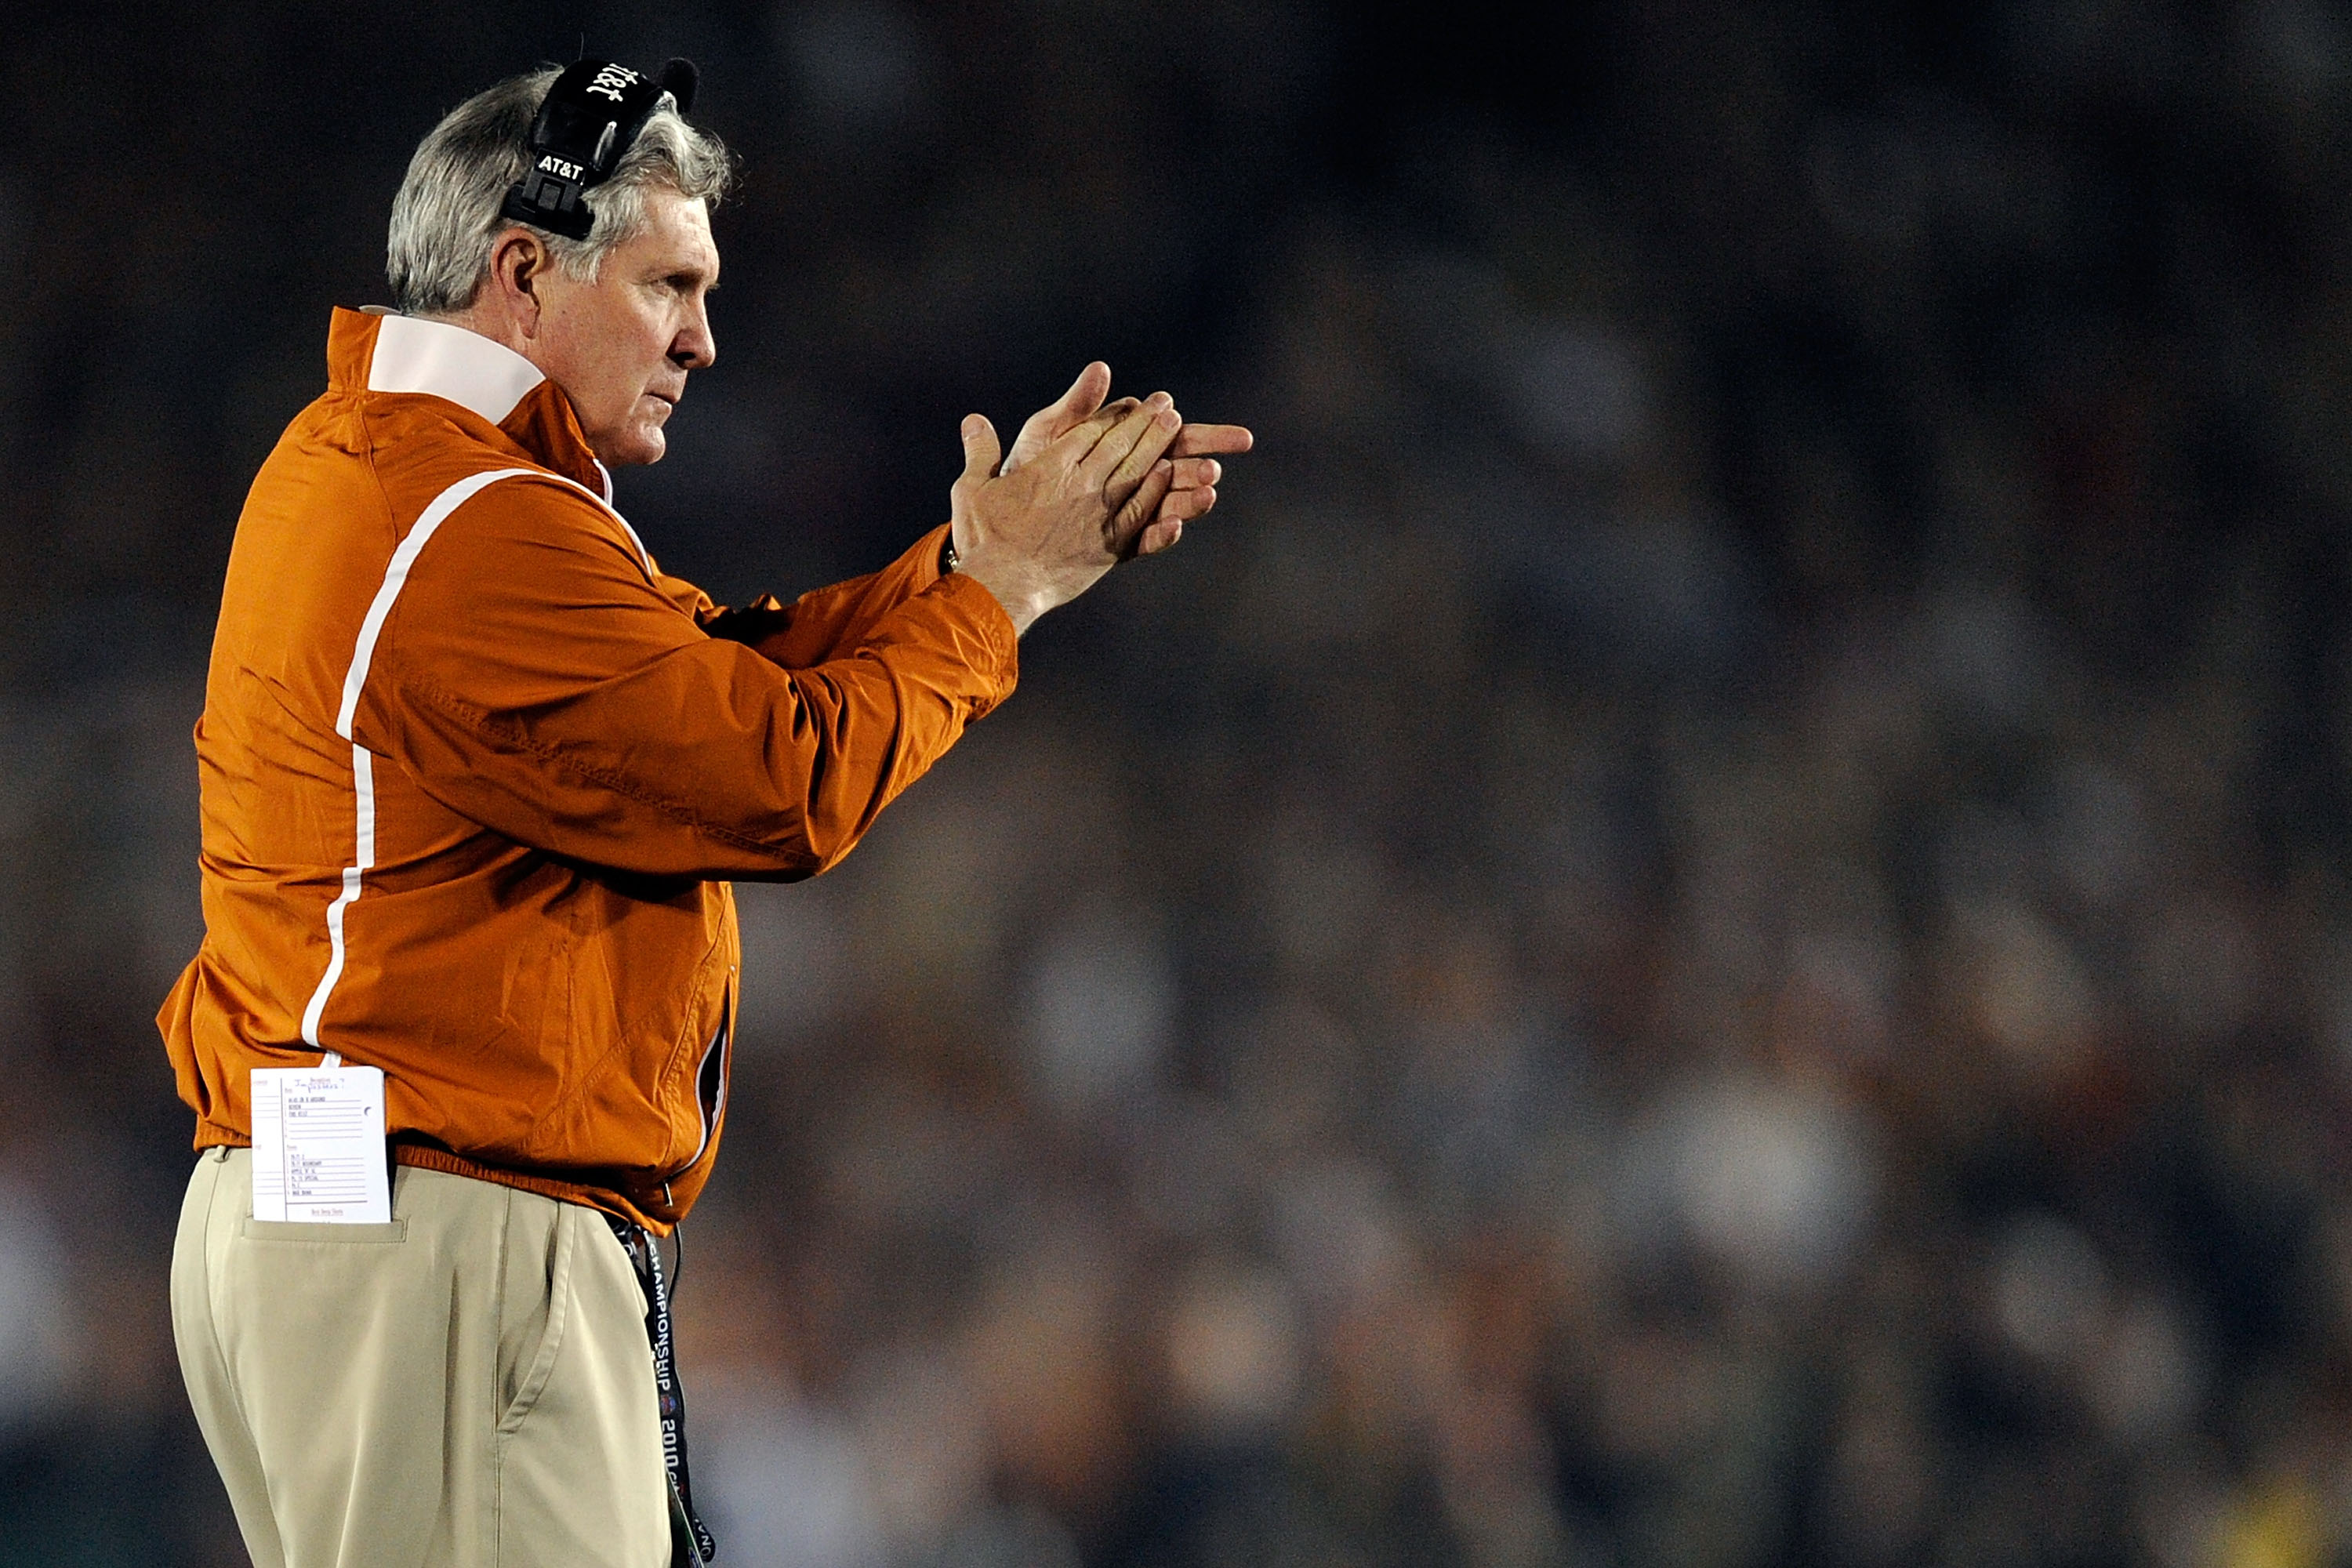 PASADENA, CA - JANUARY 07:  Head Coach Mack Brown of the Texas Longhorns stands on the sidelines during the Citi BCS National Championship game against the Alabama Crimson Tide at the Rose Bowl on January 7, 2010 in Pasadena, California.  (Photo by Kevork